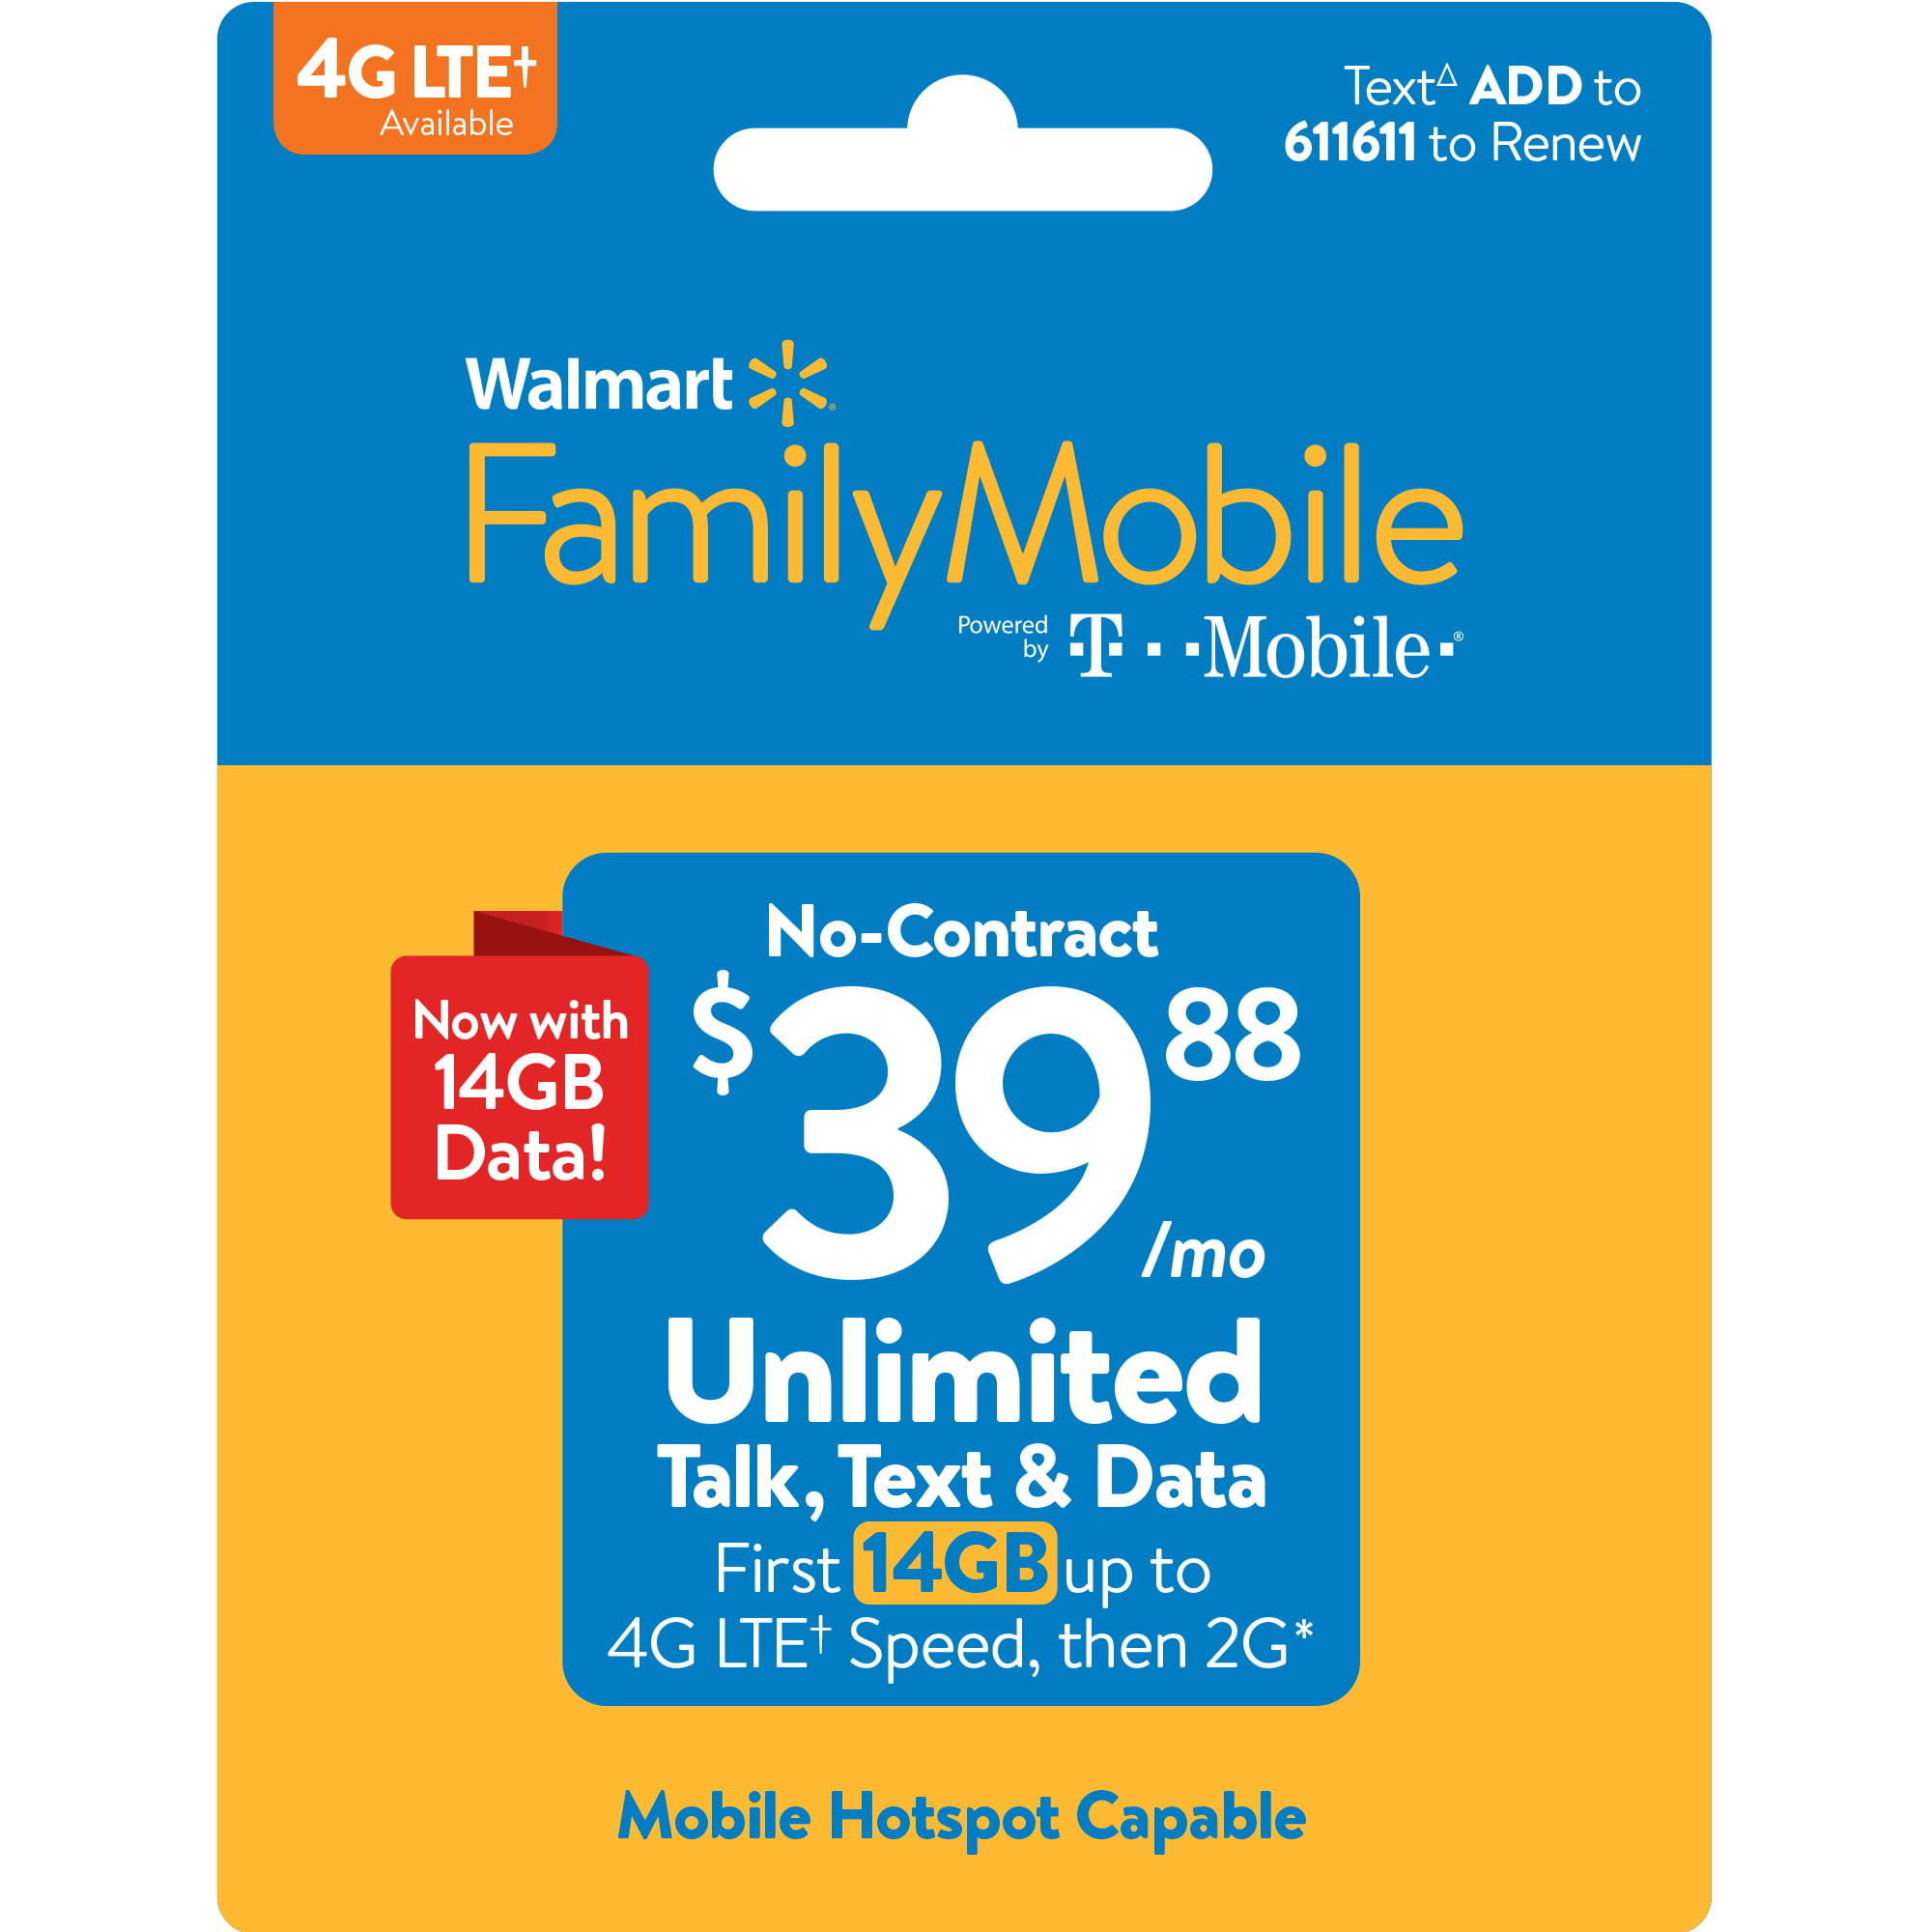 Walmart Family Mobile $39 88 Unlimited Monthly Plan (with up to 14GB of  data at high speed, then 2G*) w Mobile Hotspot Capable (Email Delivery)